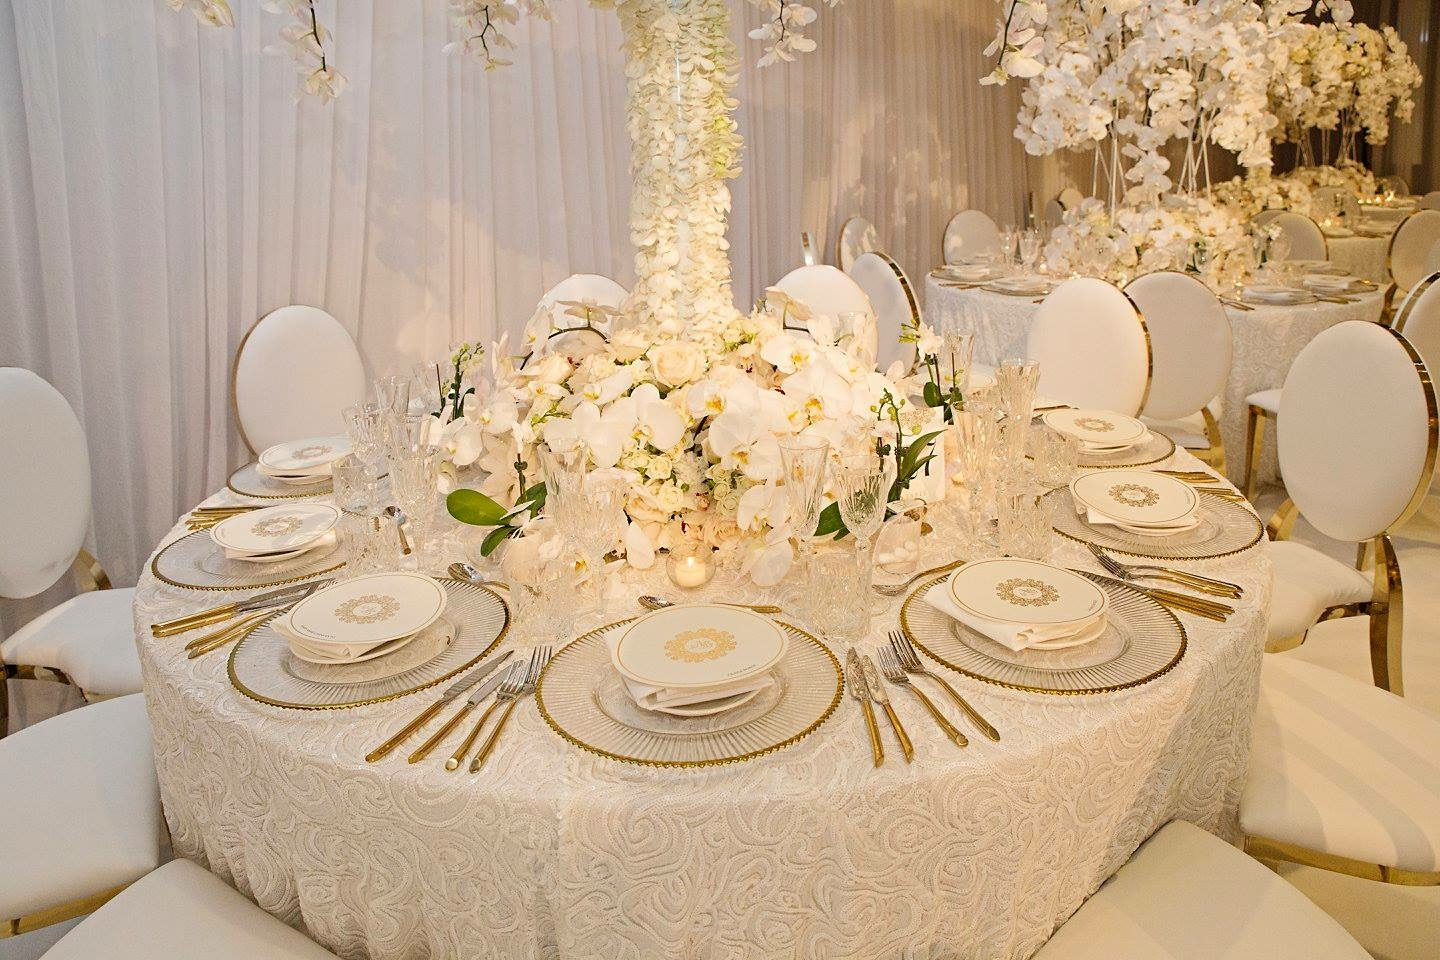 le_montage_luxury_all_white_wedding_linen_gold_chairs_centrepieces_charger_plates.JPG